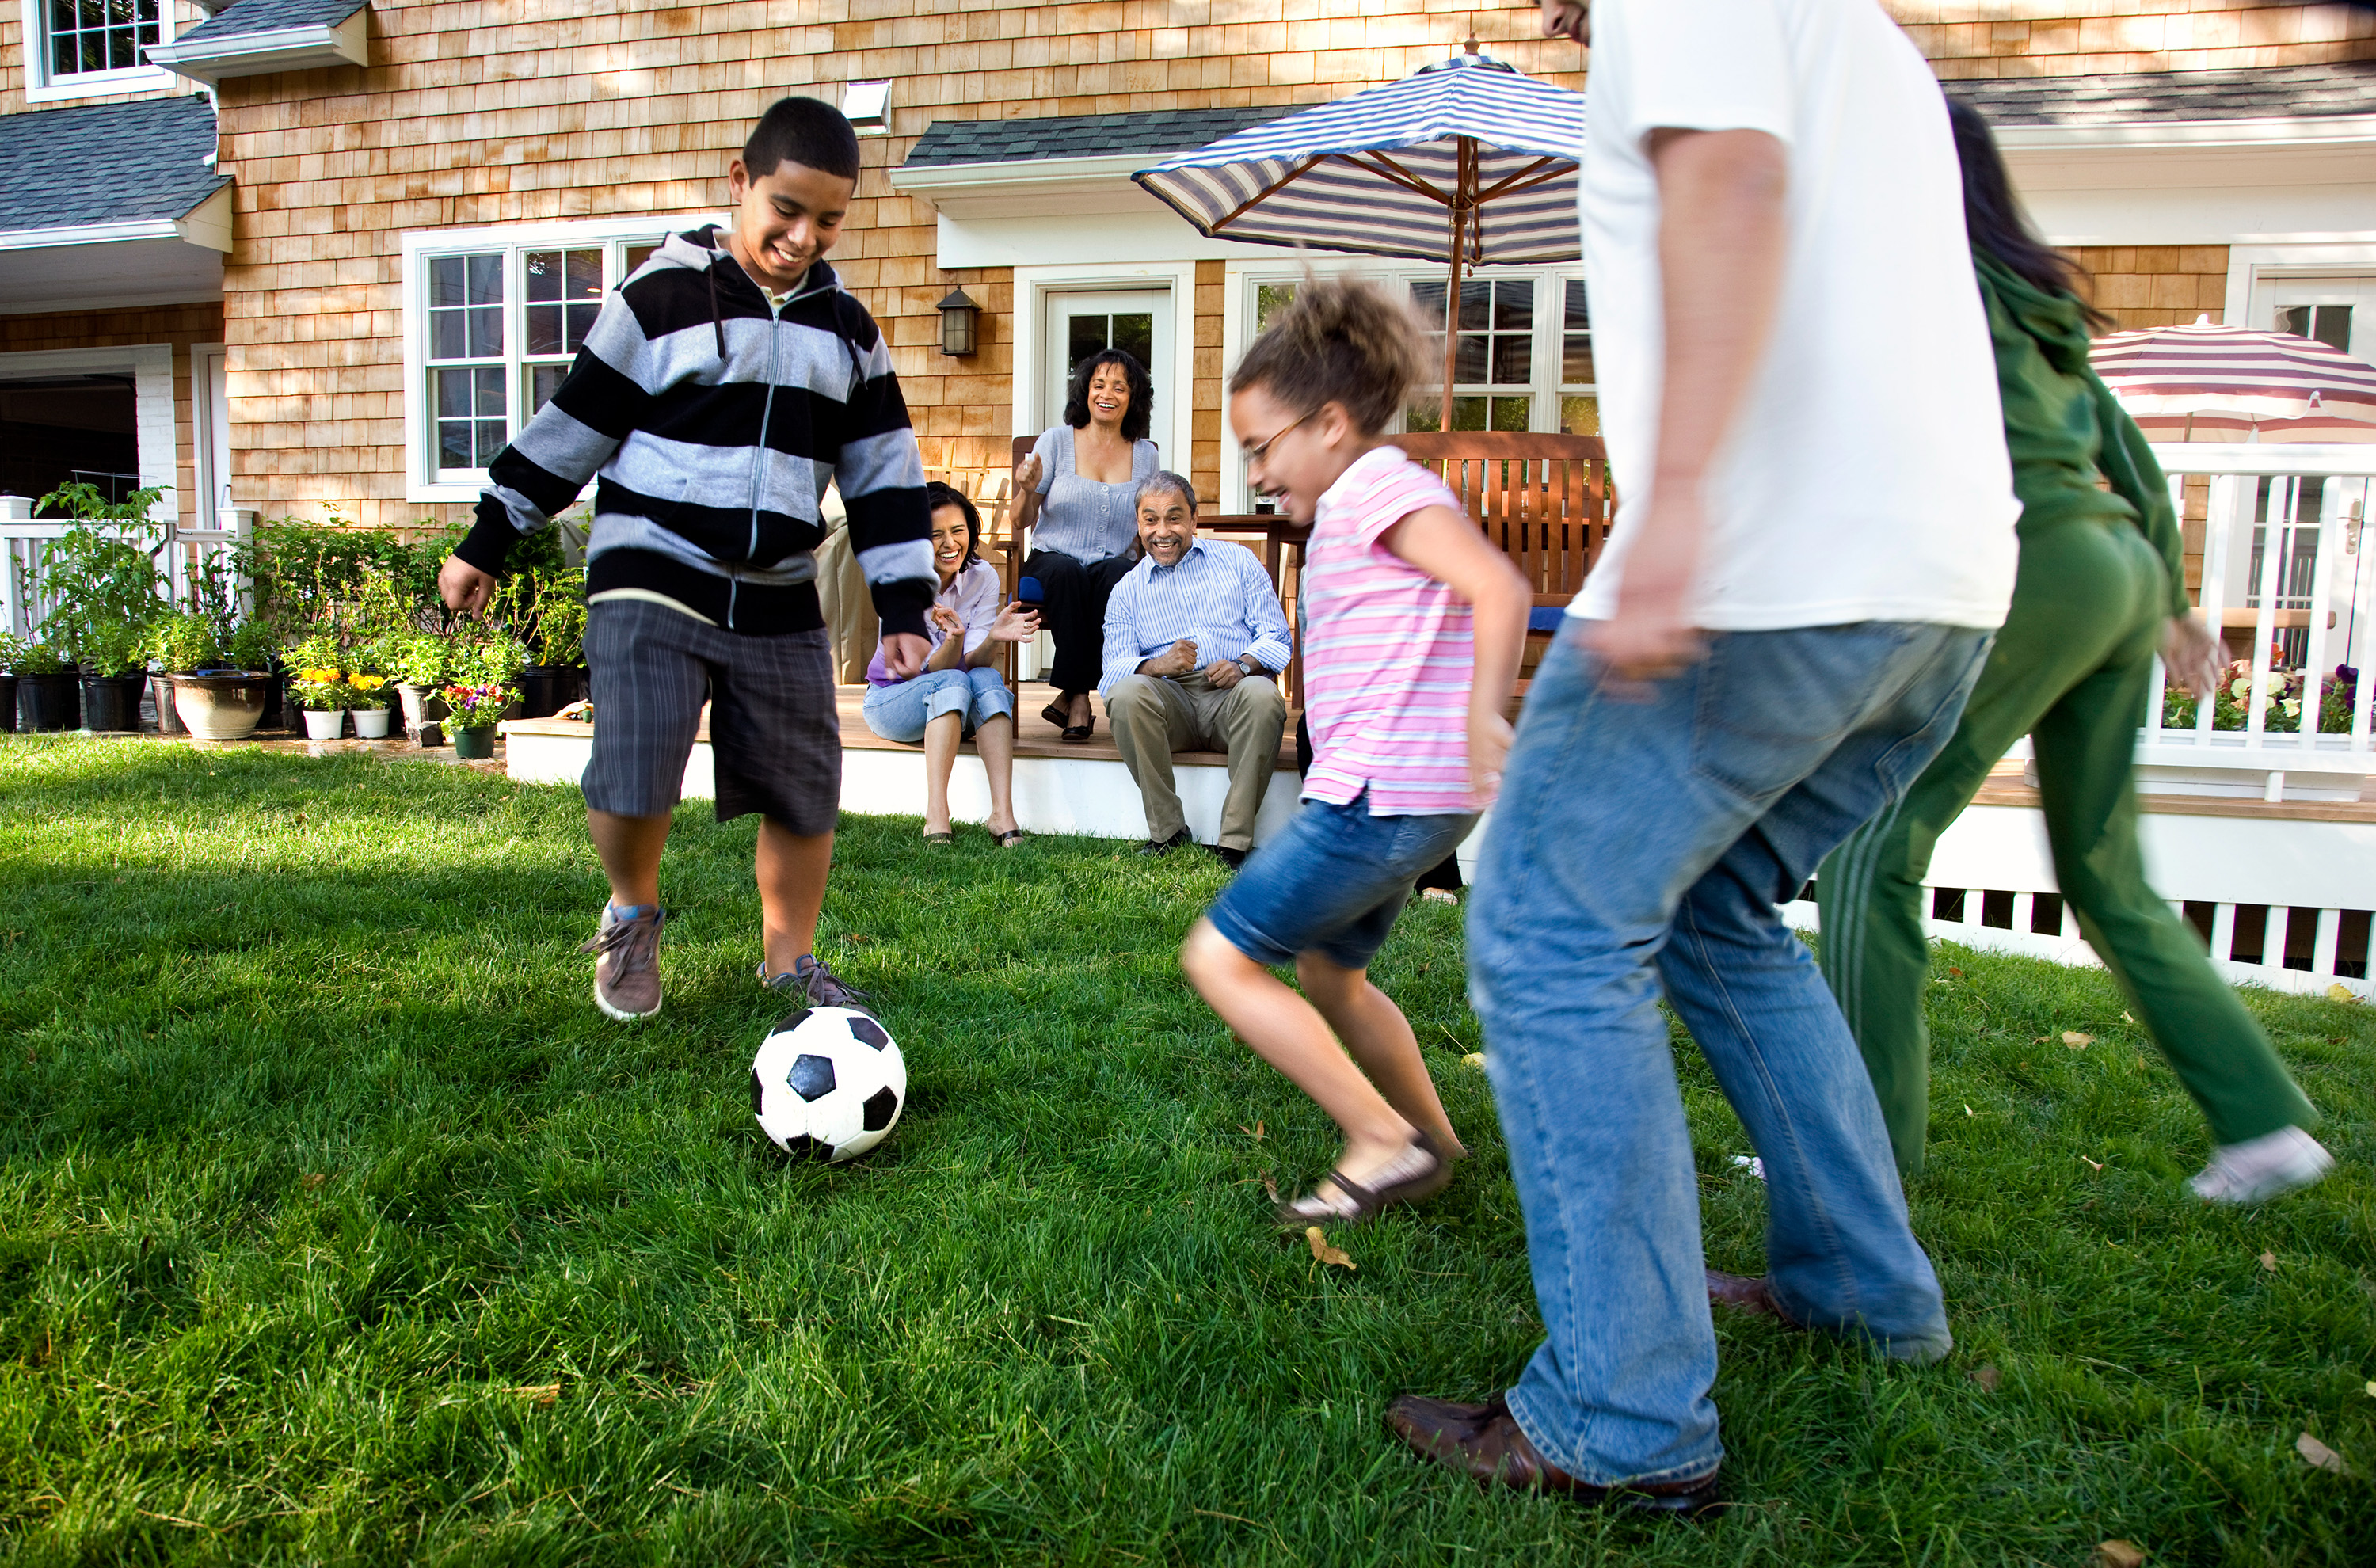 Photo of a family playing soccer in suburban backyard